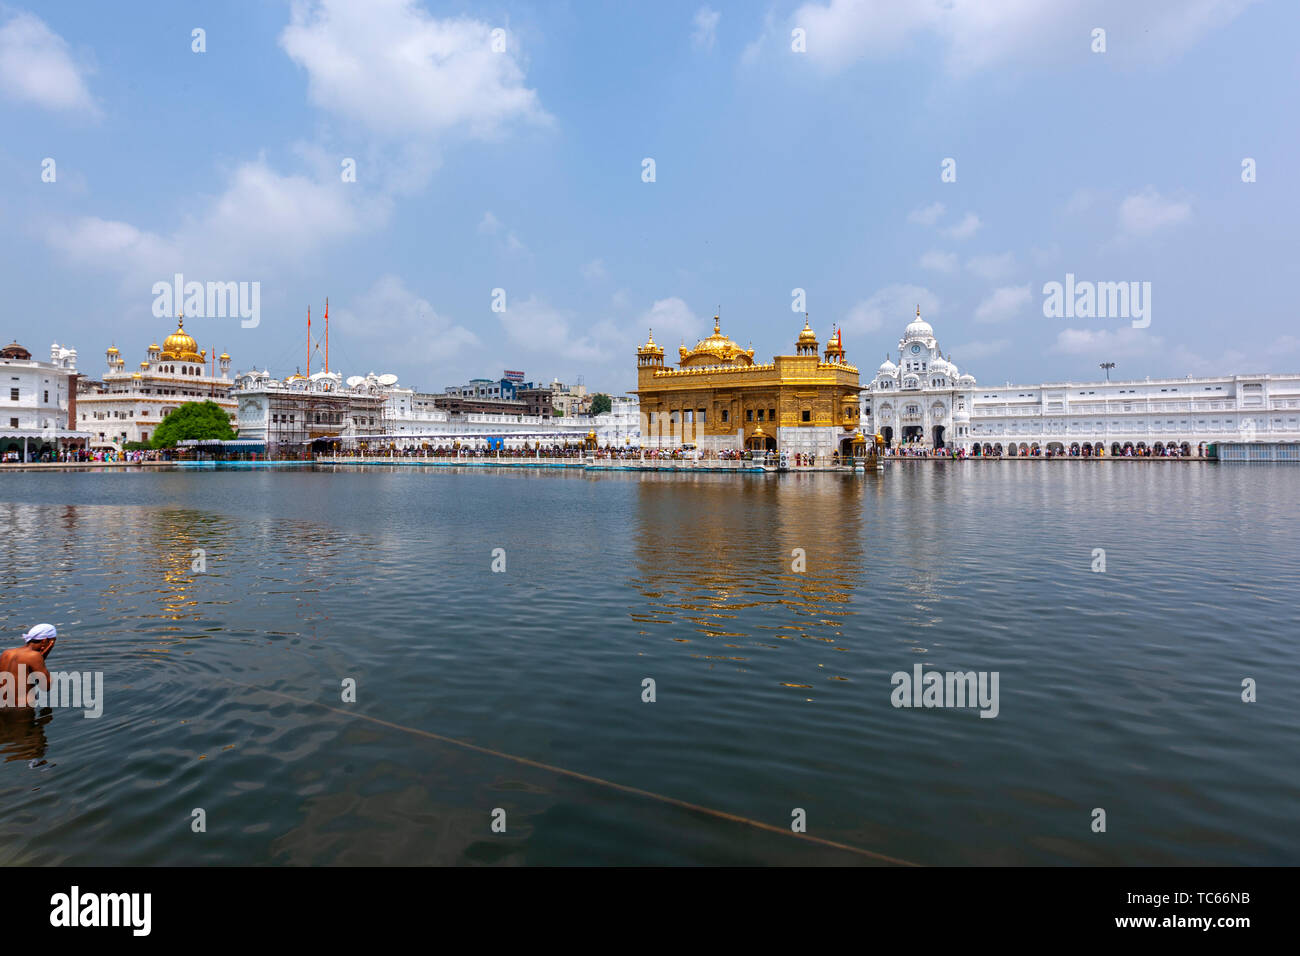 Sikh pilgrim. Some Sikh take a dip in the pool. The Harmandar Sahib , Golden Temple,  Amritsar, Punjab, India Stock Photo